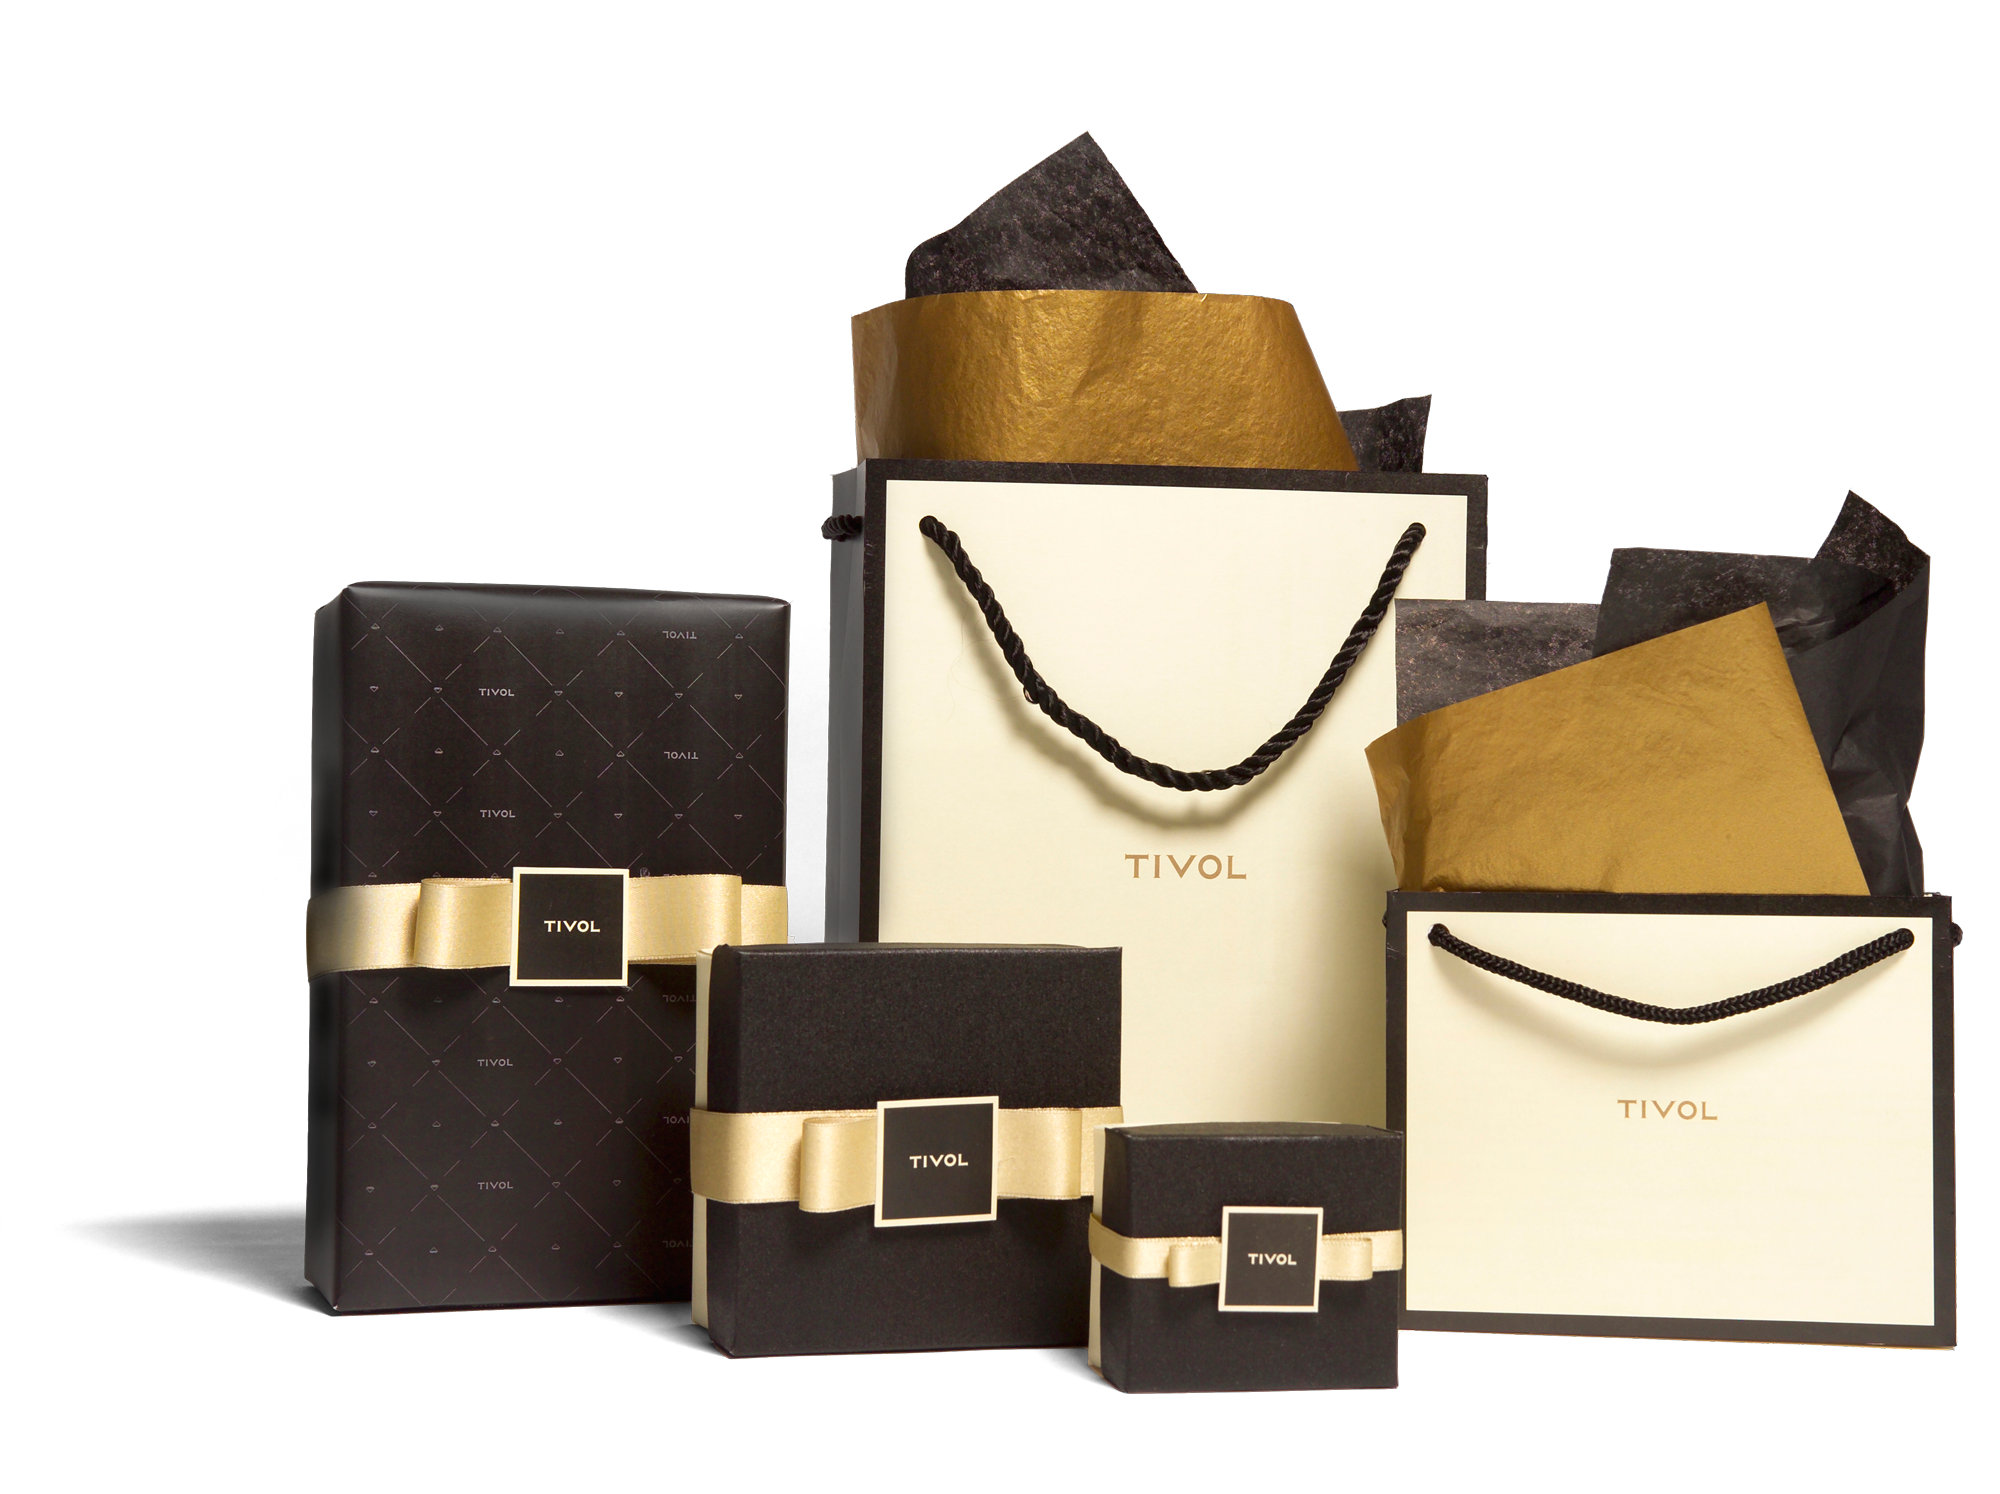 Tivol Jewelry Packaging